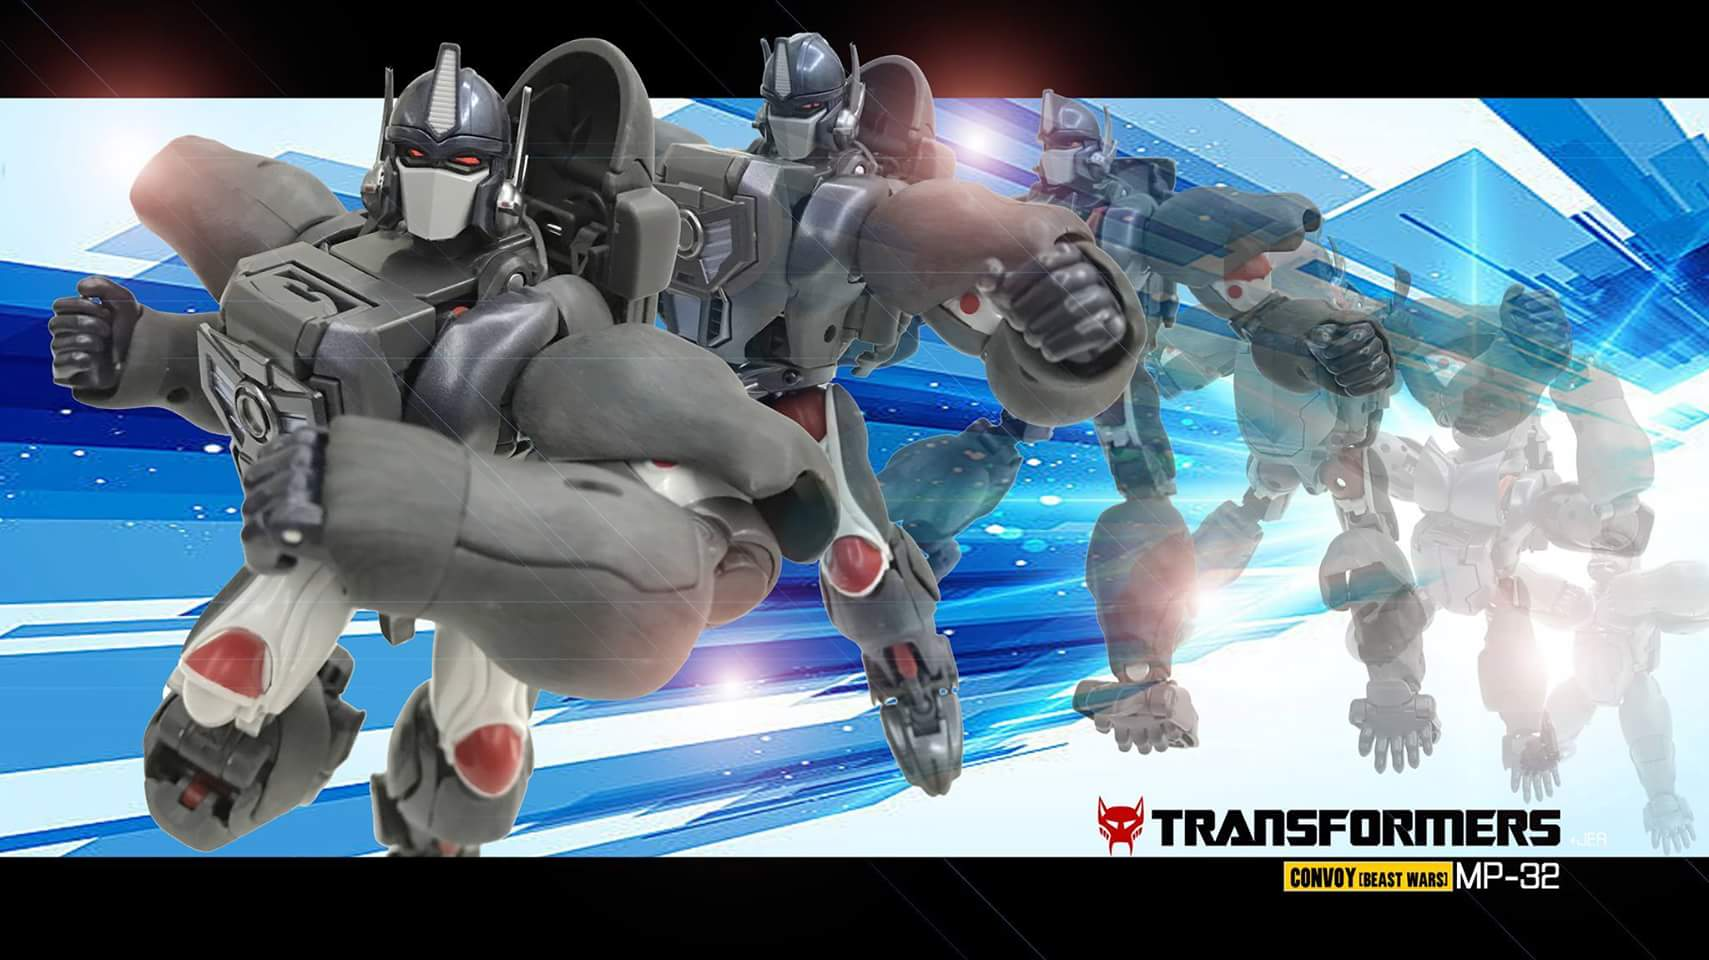 [Masterpiece] MP-32, MP-38 Optimus Primal et MP-38+ Burning Convoy (Beast Wars) - Page 3 1vPxbBx2